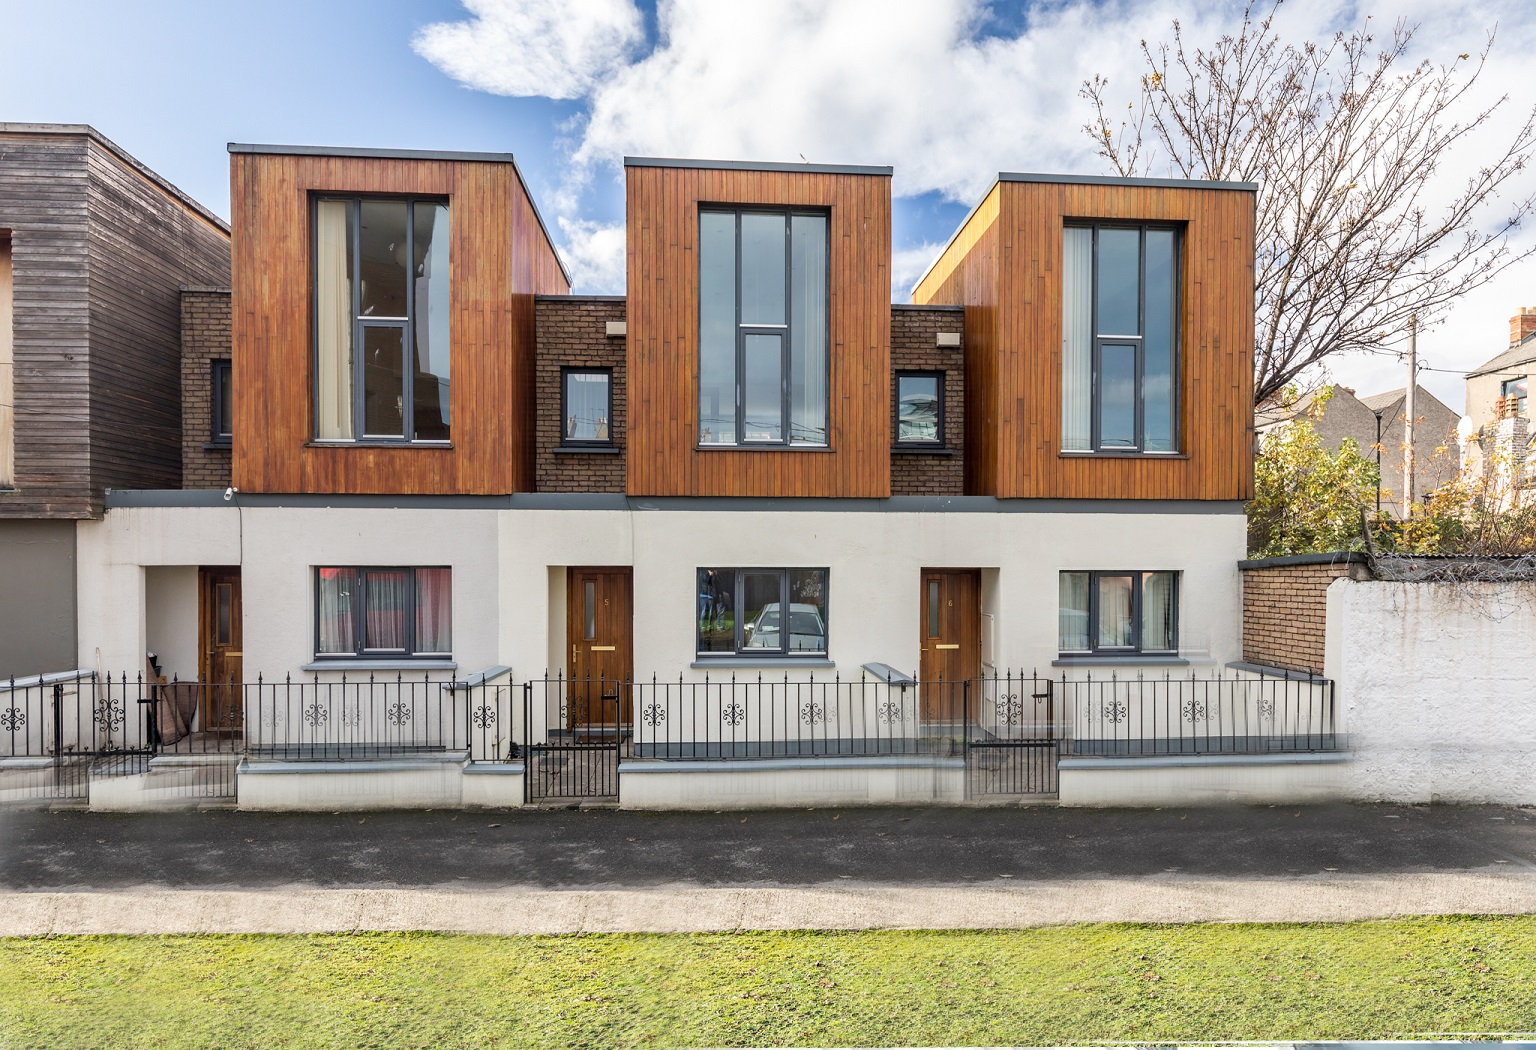 5 Hewardine Terrace, Ardan Hewardine, Mountjoy, Dublin 1.